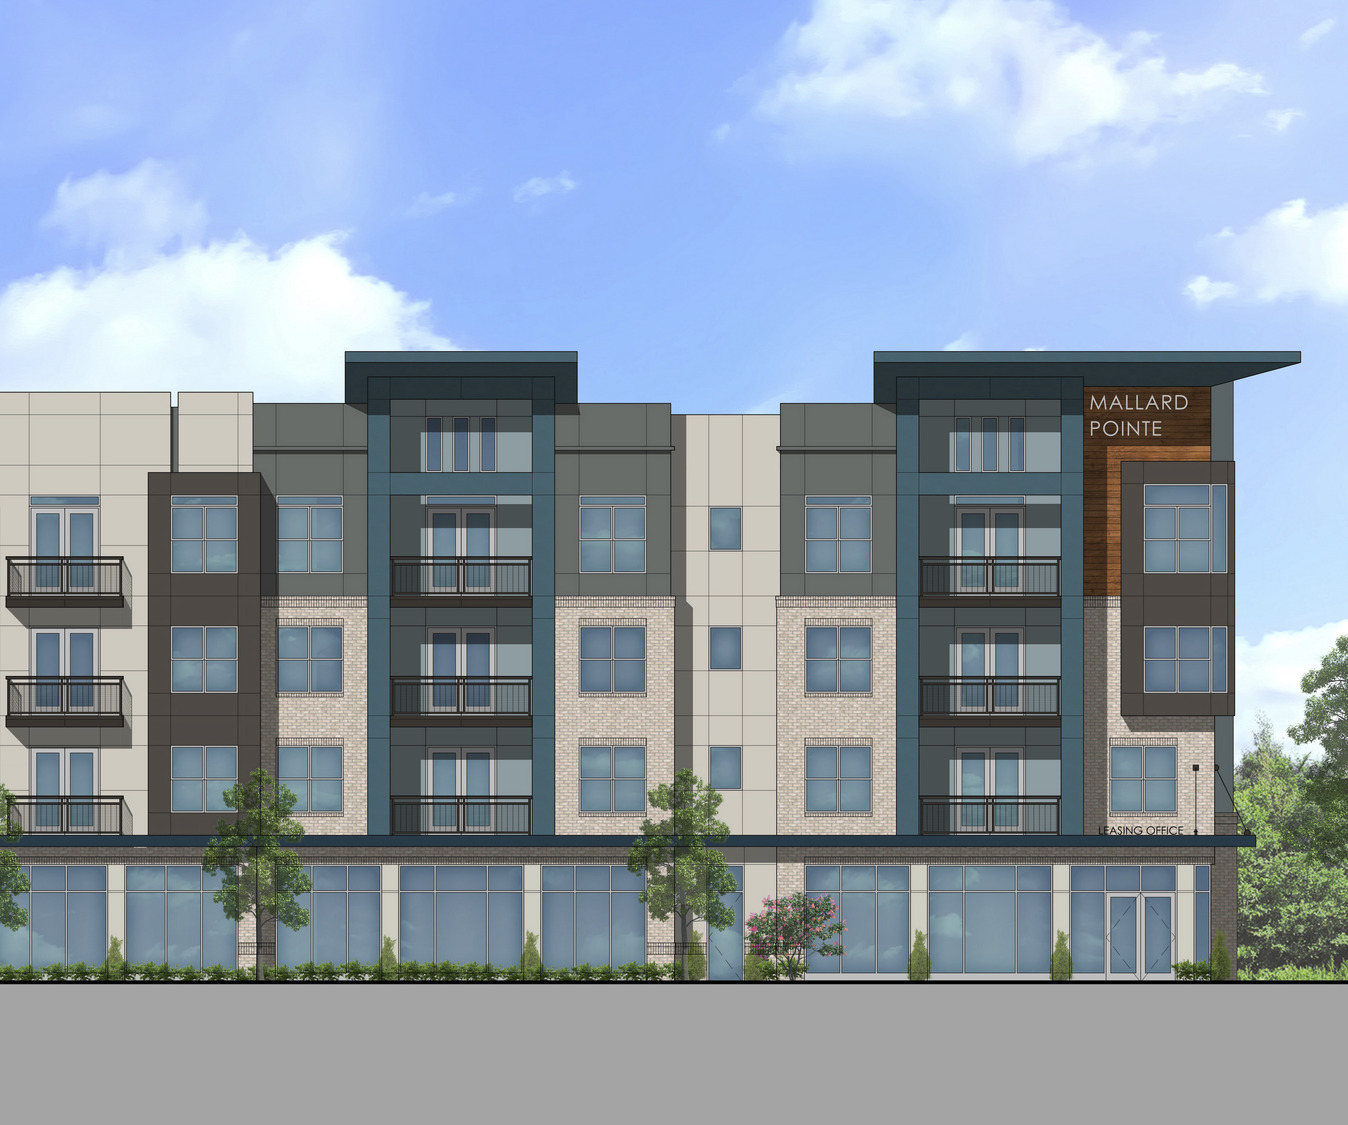 CBG builds Mallard Pointe, a 260-Unit Luxury Community with Amenities on Expansive Site in Charlotte, NC